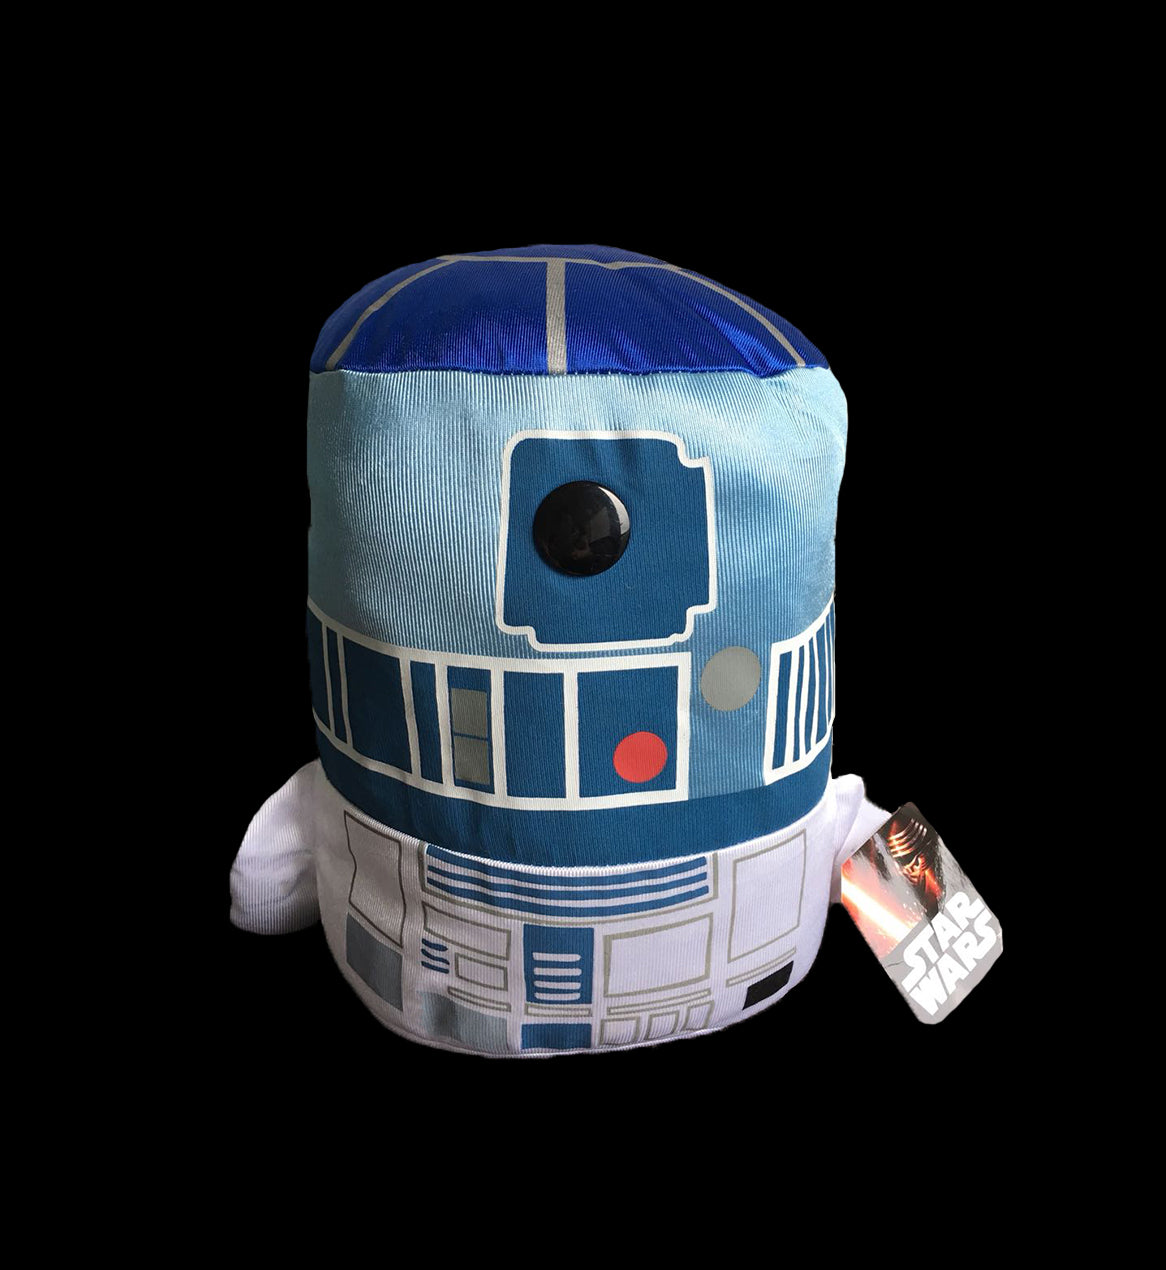 STAR WARS Plush Cushion (2 Style Options)